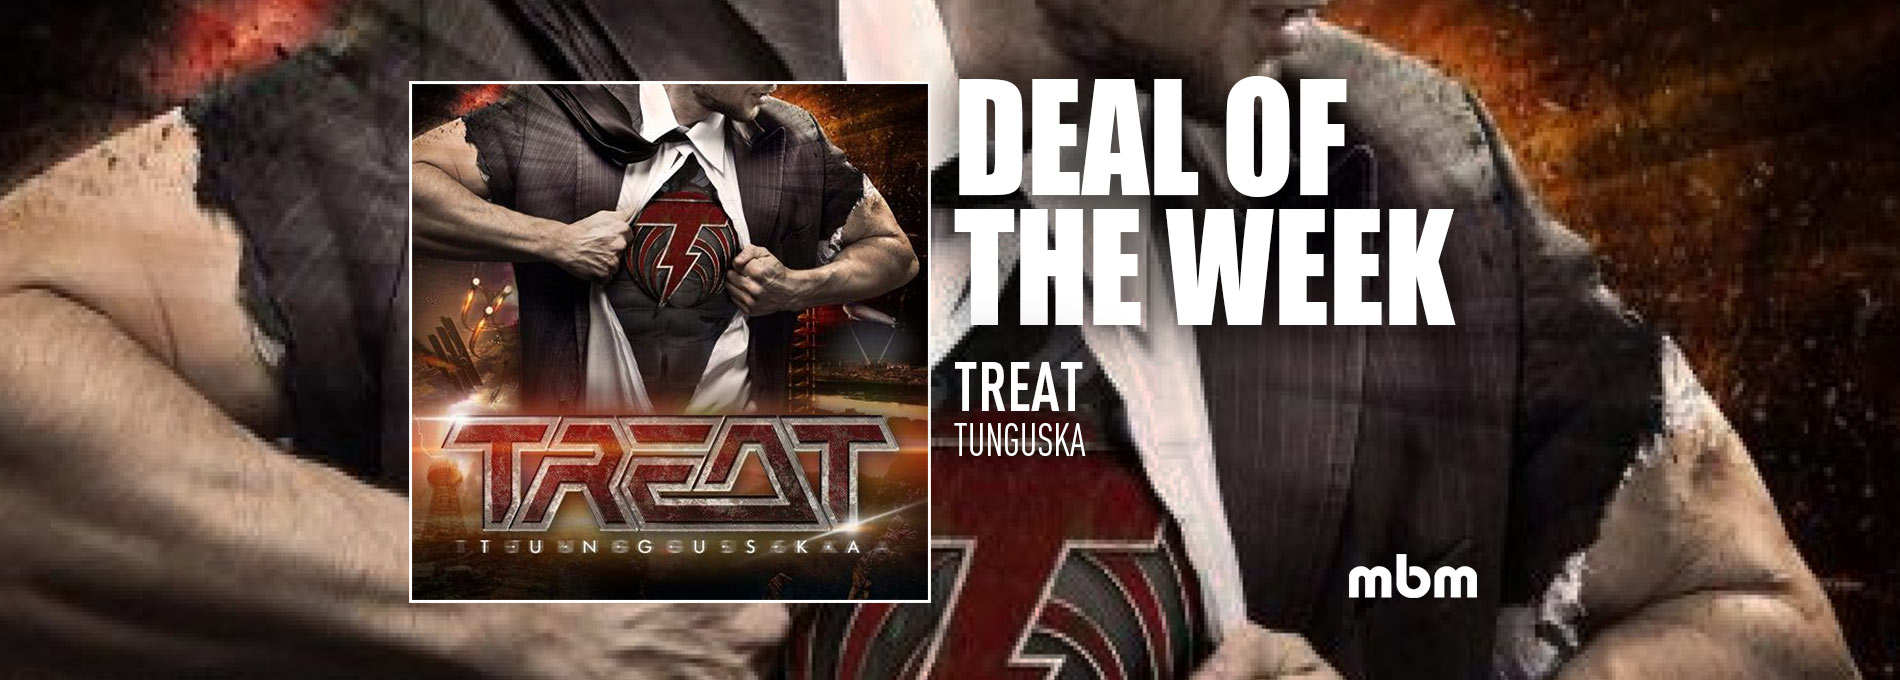 Deal Of The Week: TREAT - Tunguska